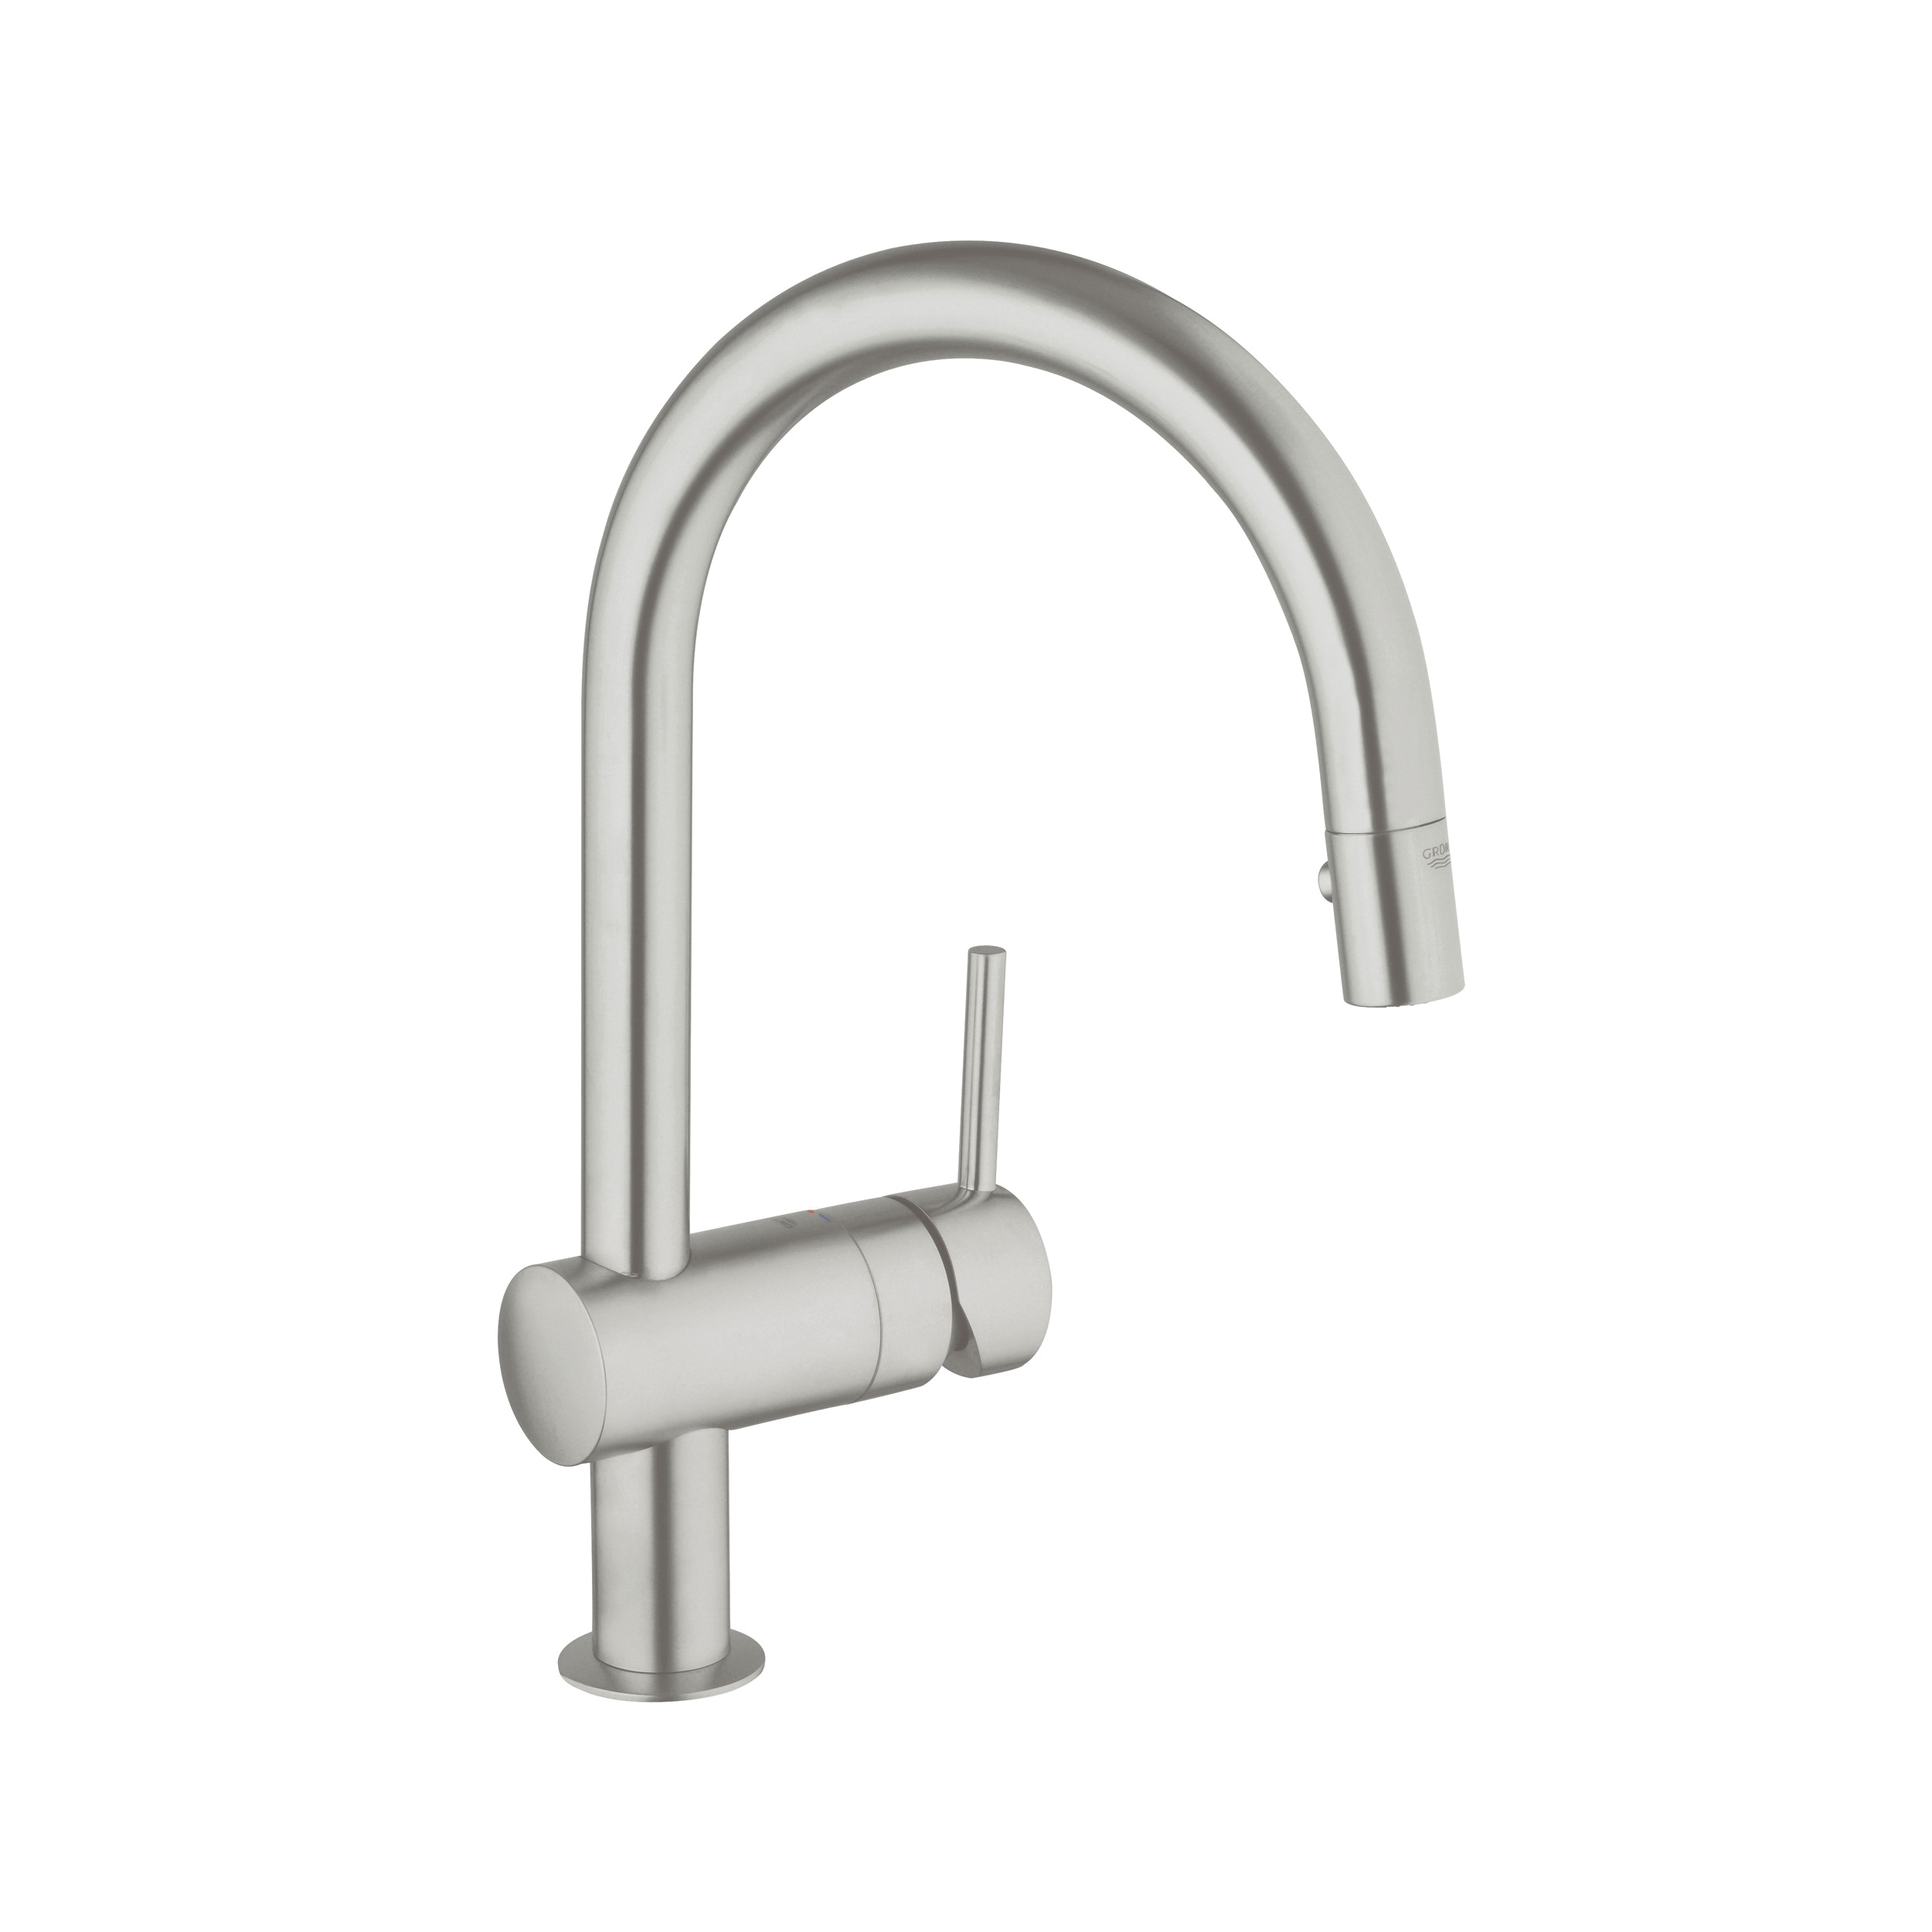 GROHE 31378DC0 Minta Sink Mixer, 1.75 gpm, 1 Handle, SuperSteel, Import